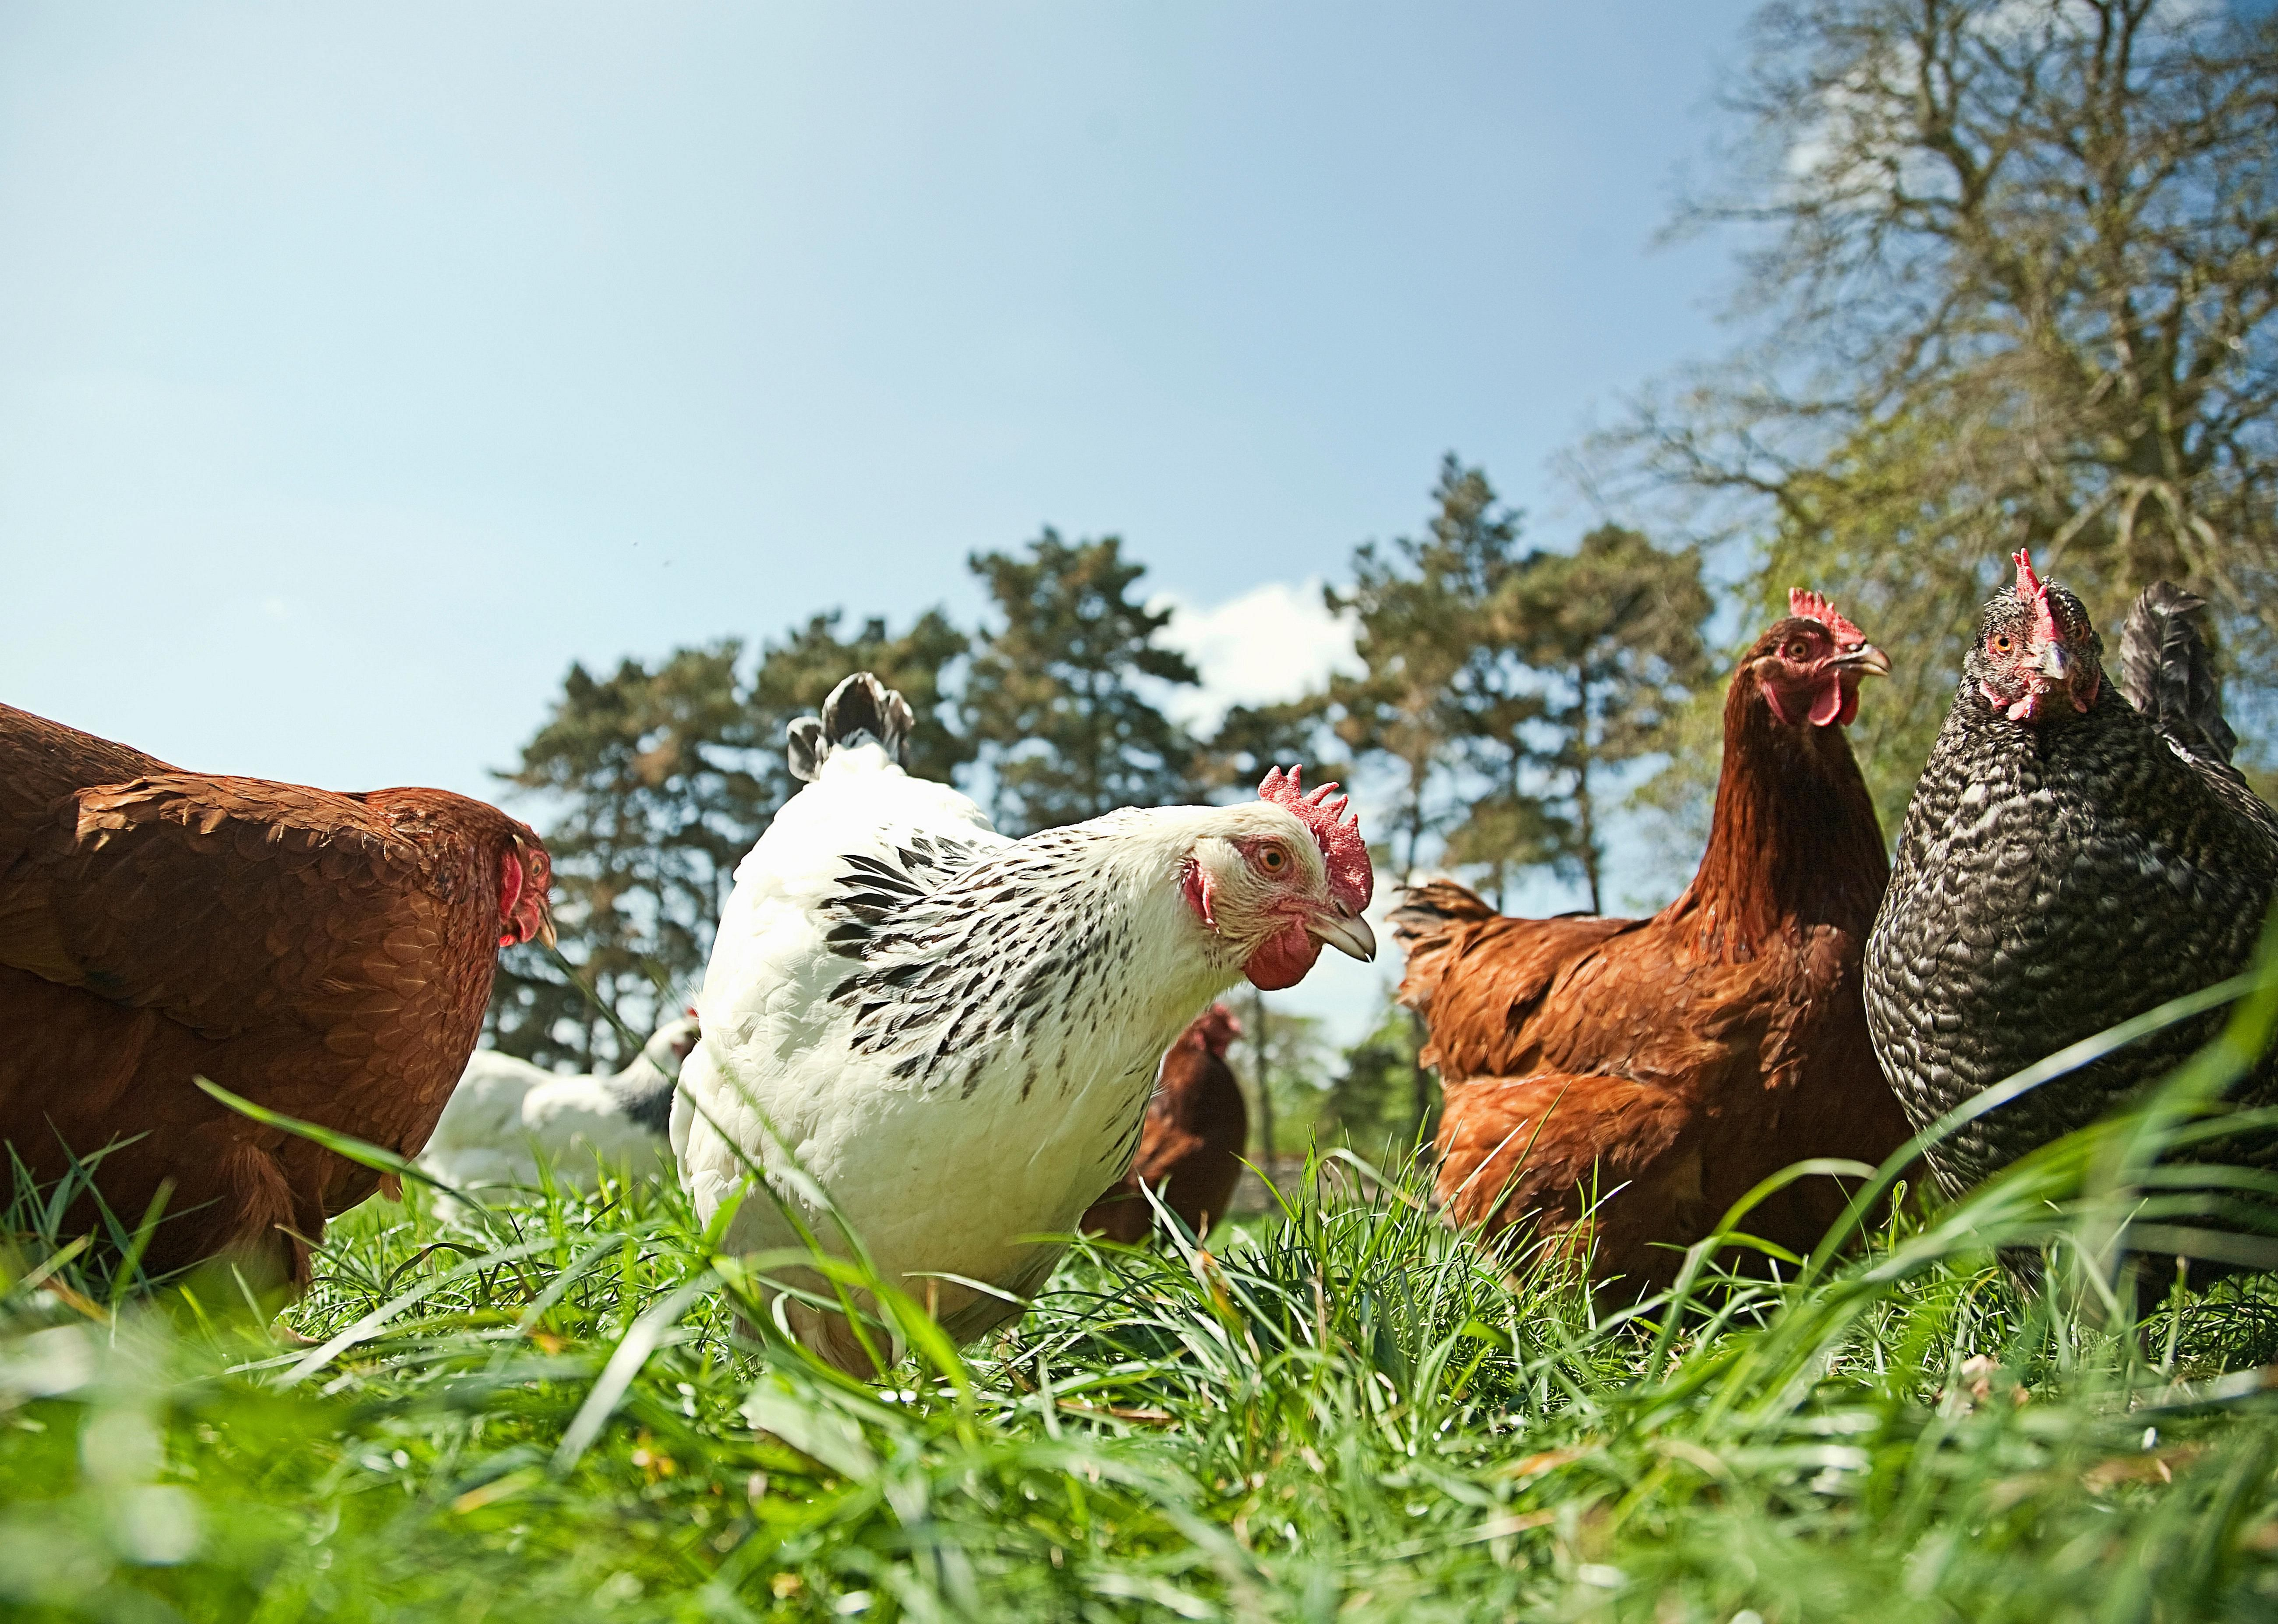 Small group of free range hens in grass